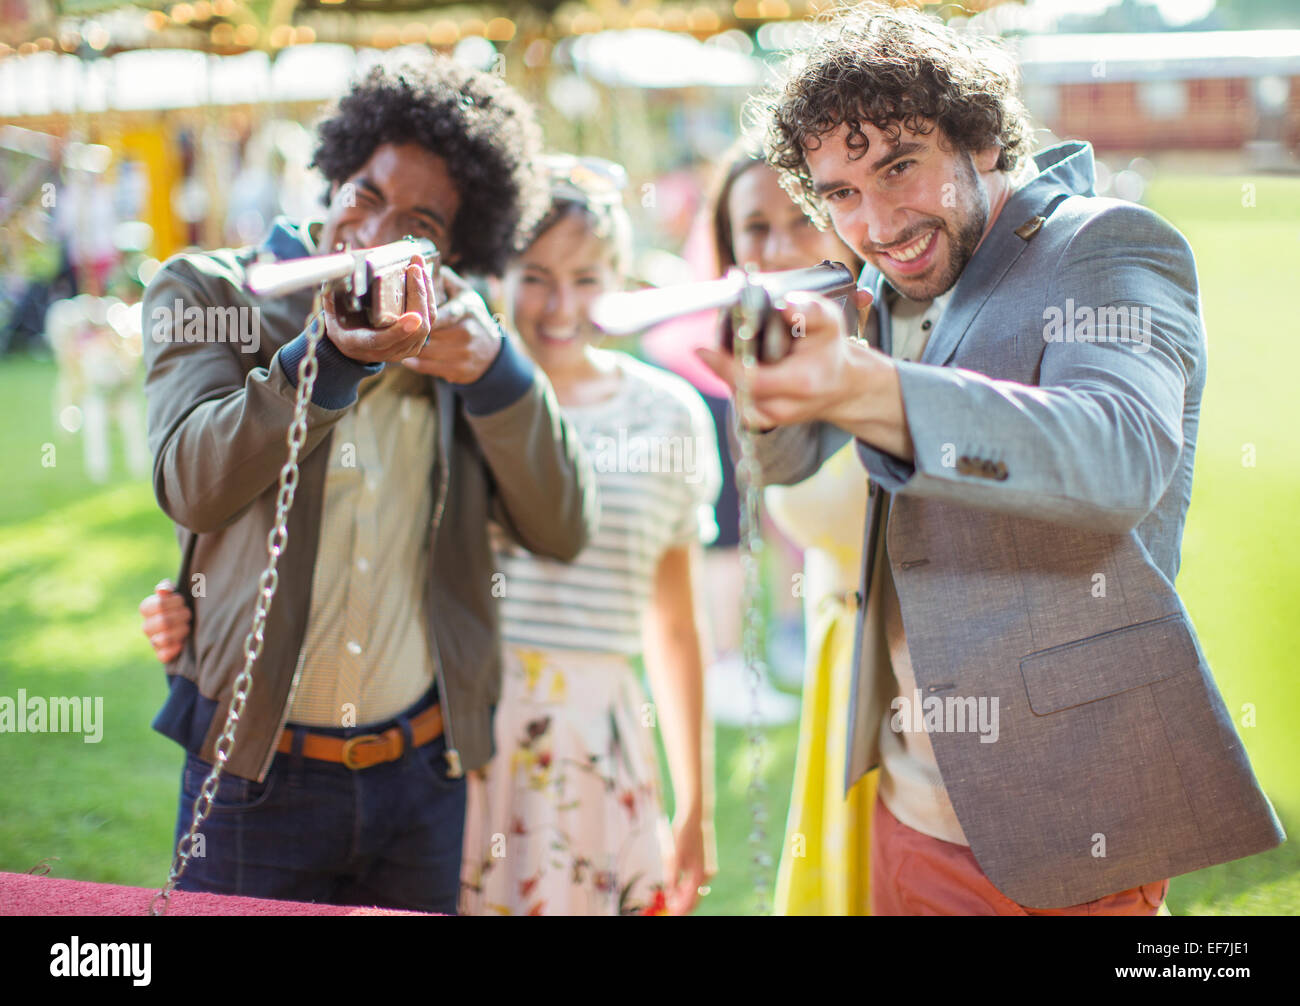 Young men aiming with guns in amusement park - Stock Image